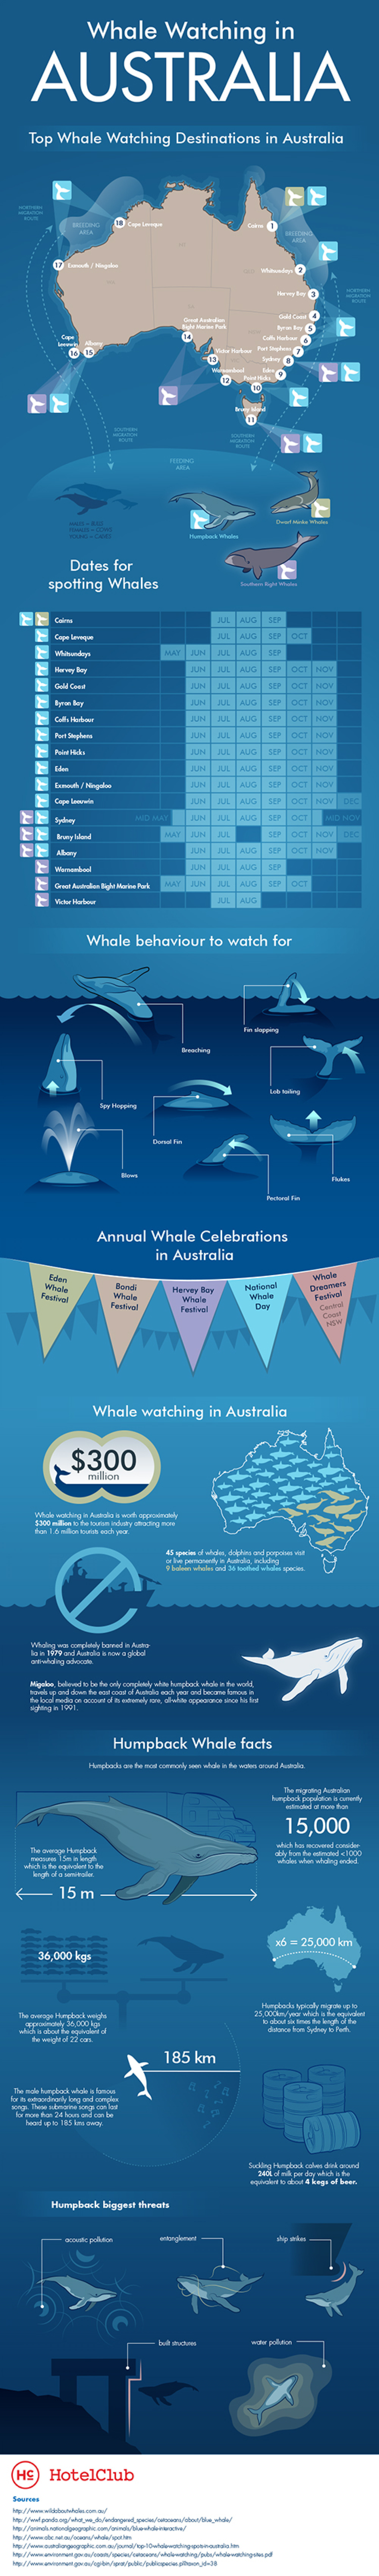 Whale Watching in Australia Infographic